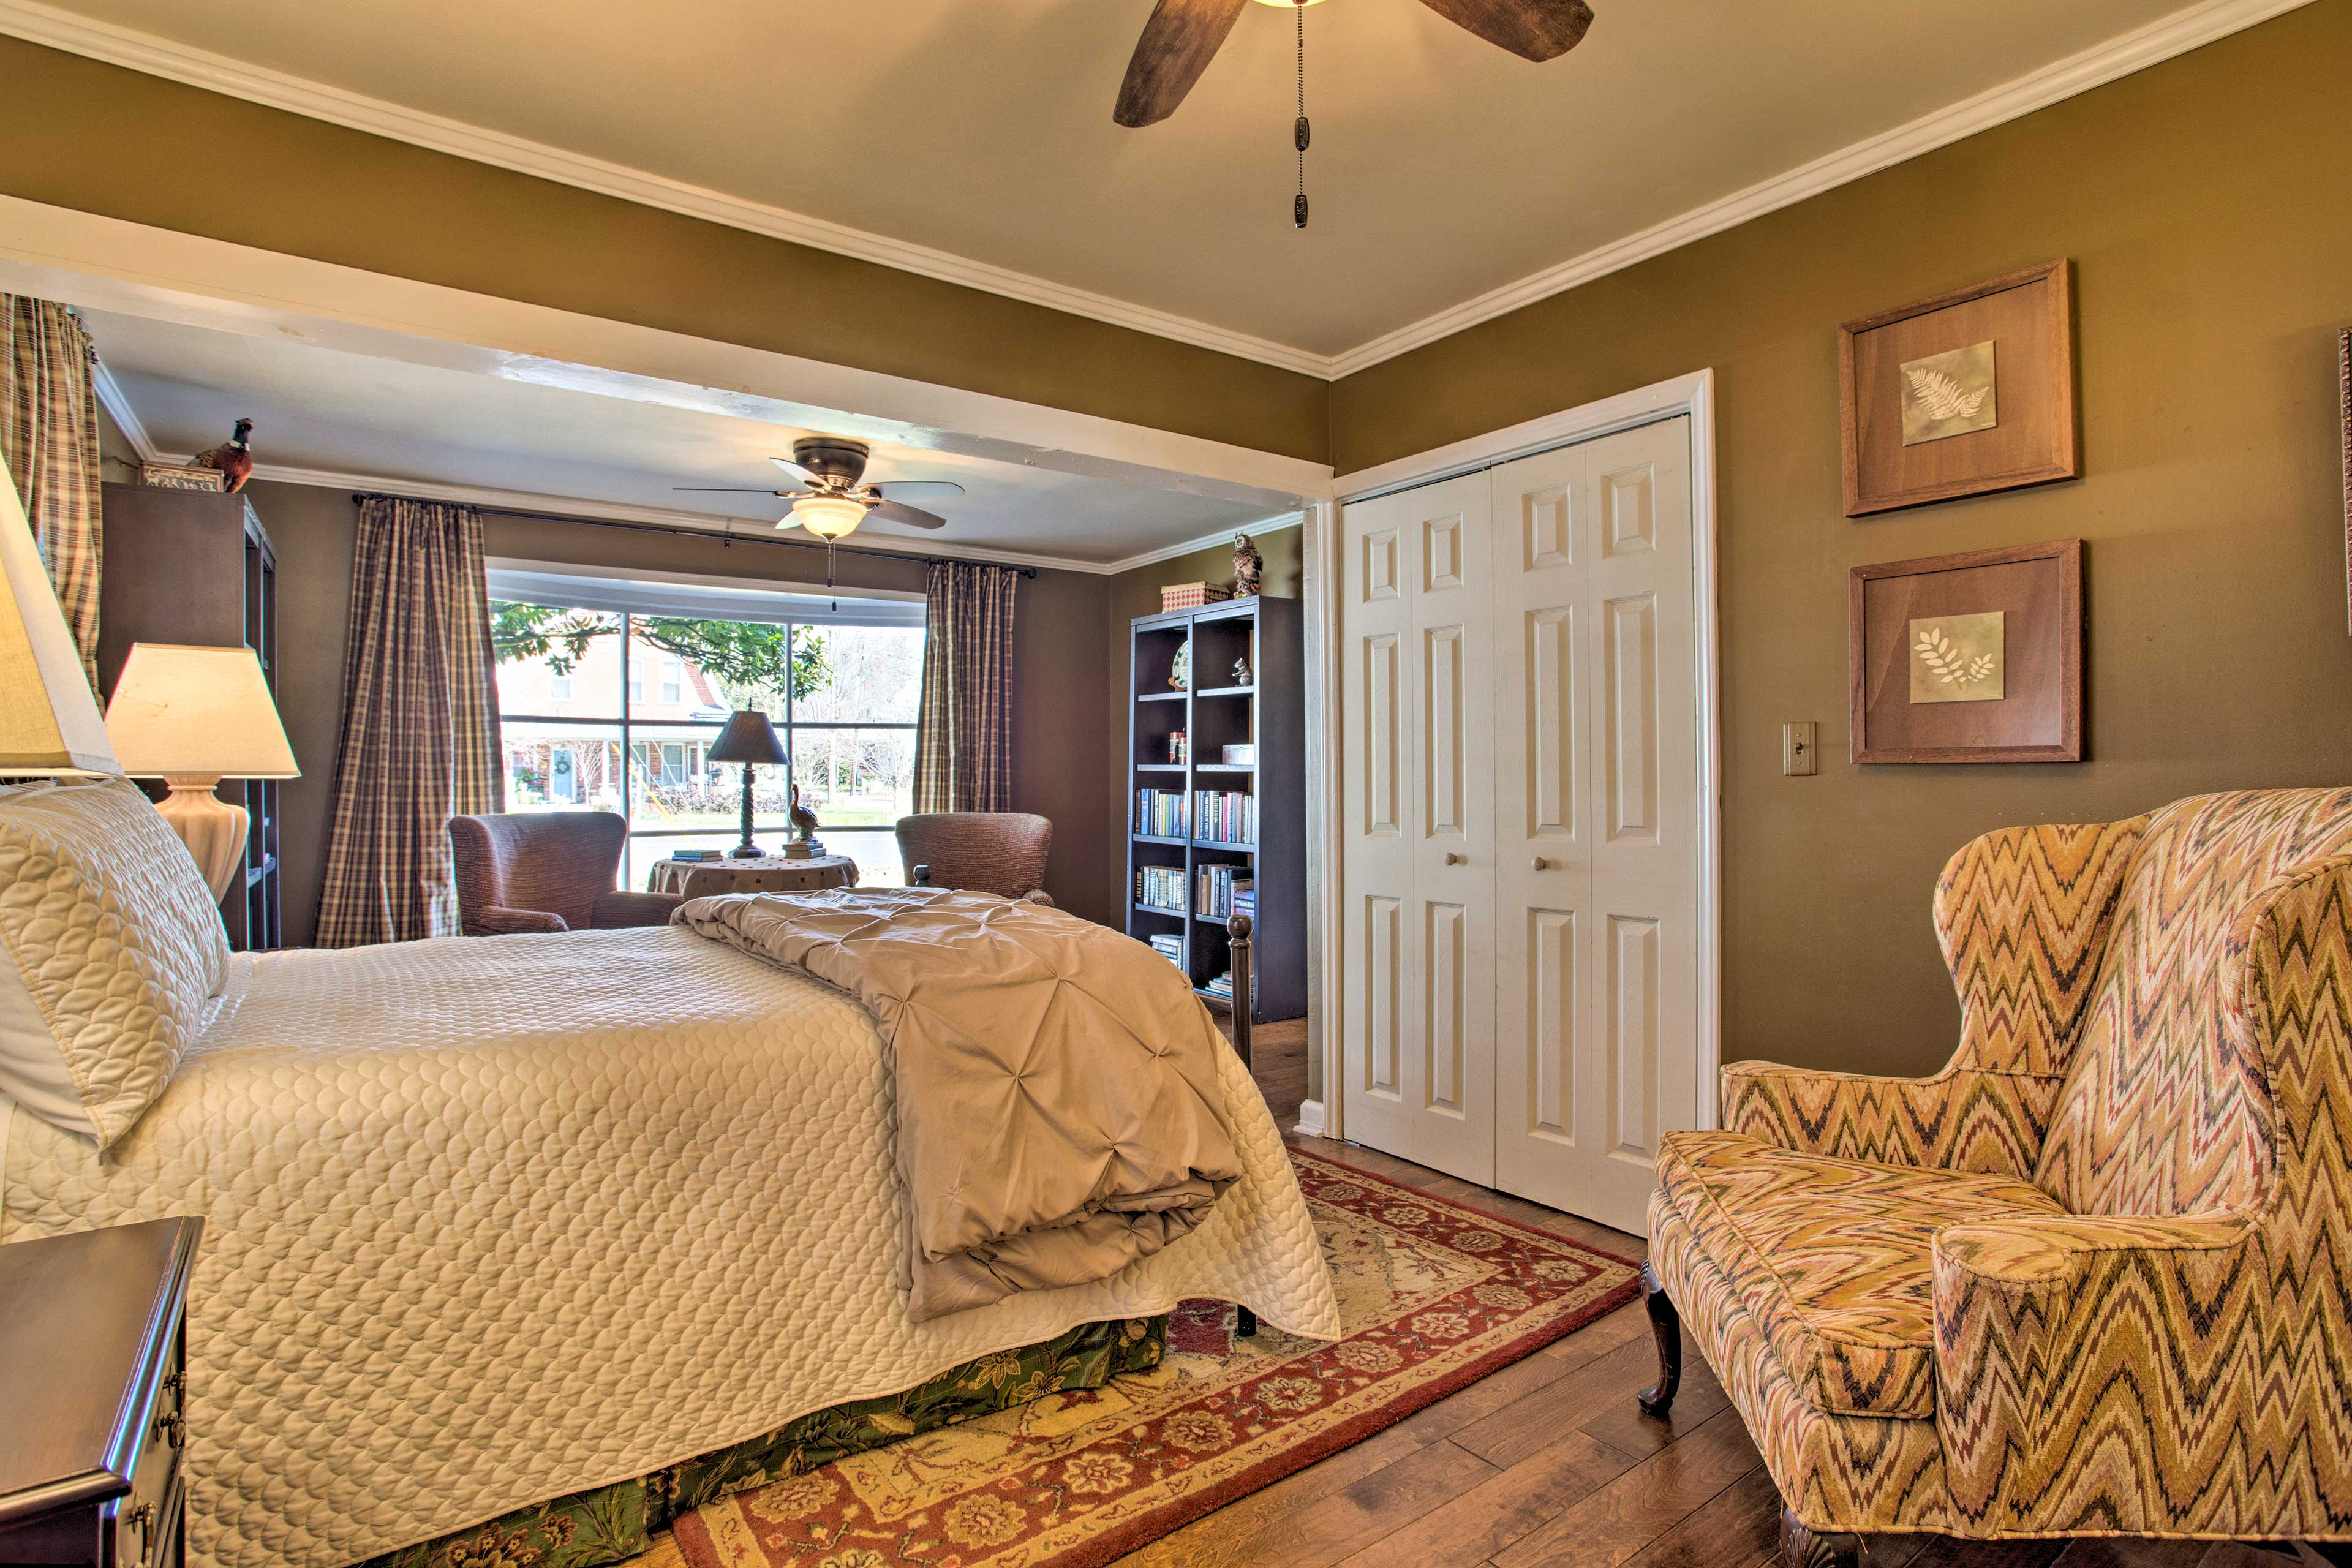 The home features ceiling fans for those warm summer days.